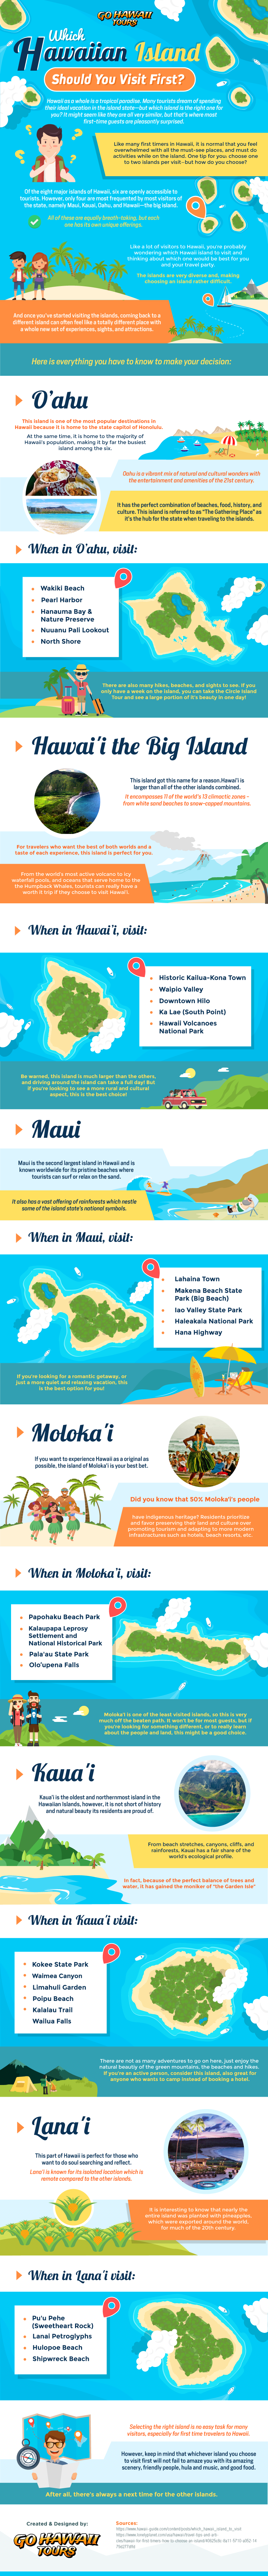 Hawaiian Island Magic: Where Do You Start? - Infographic